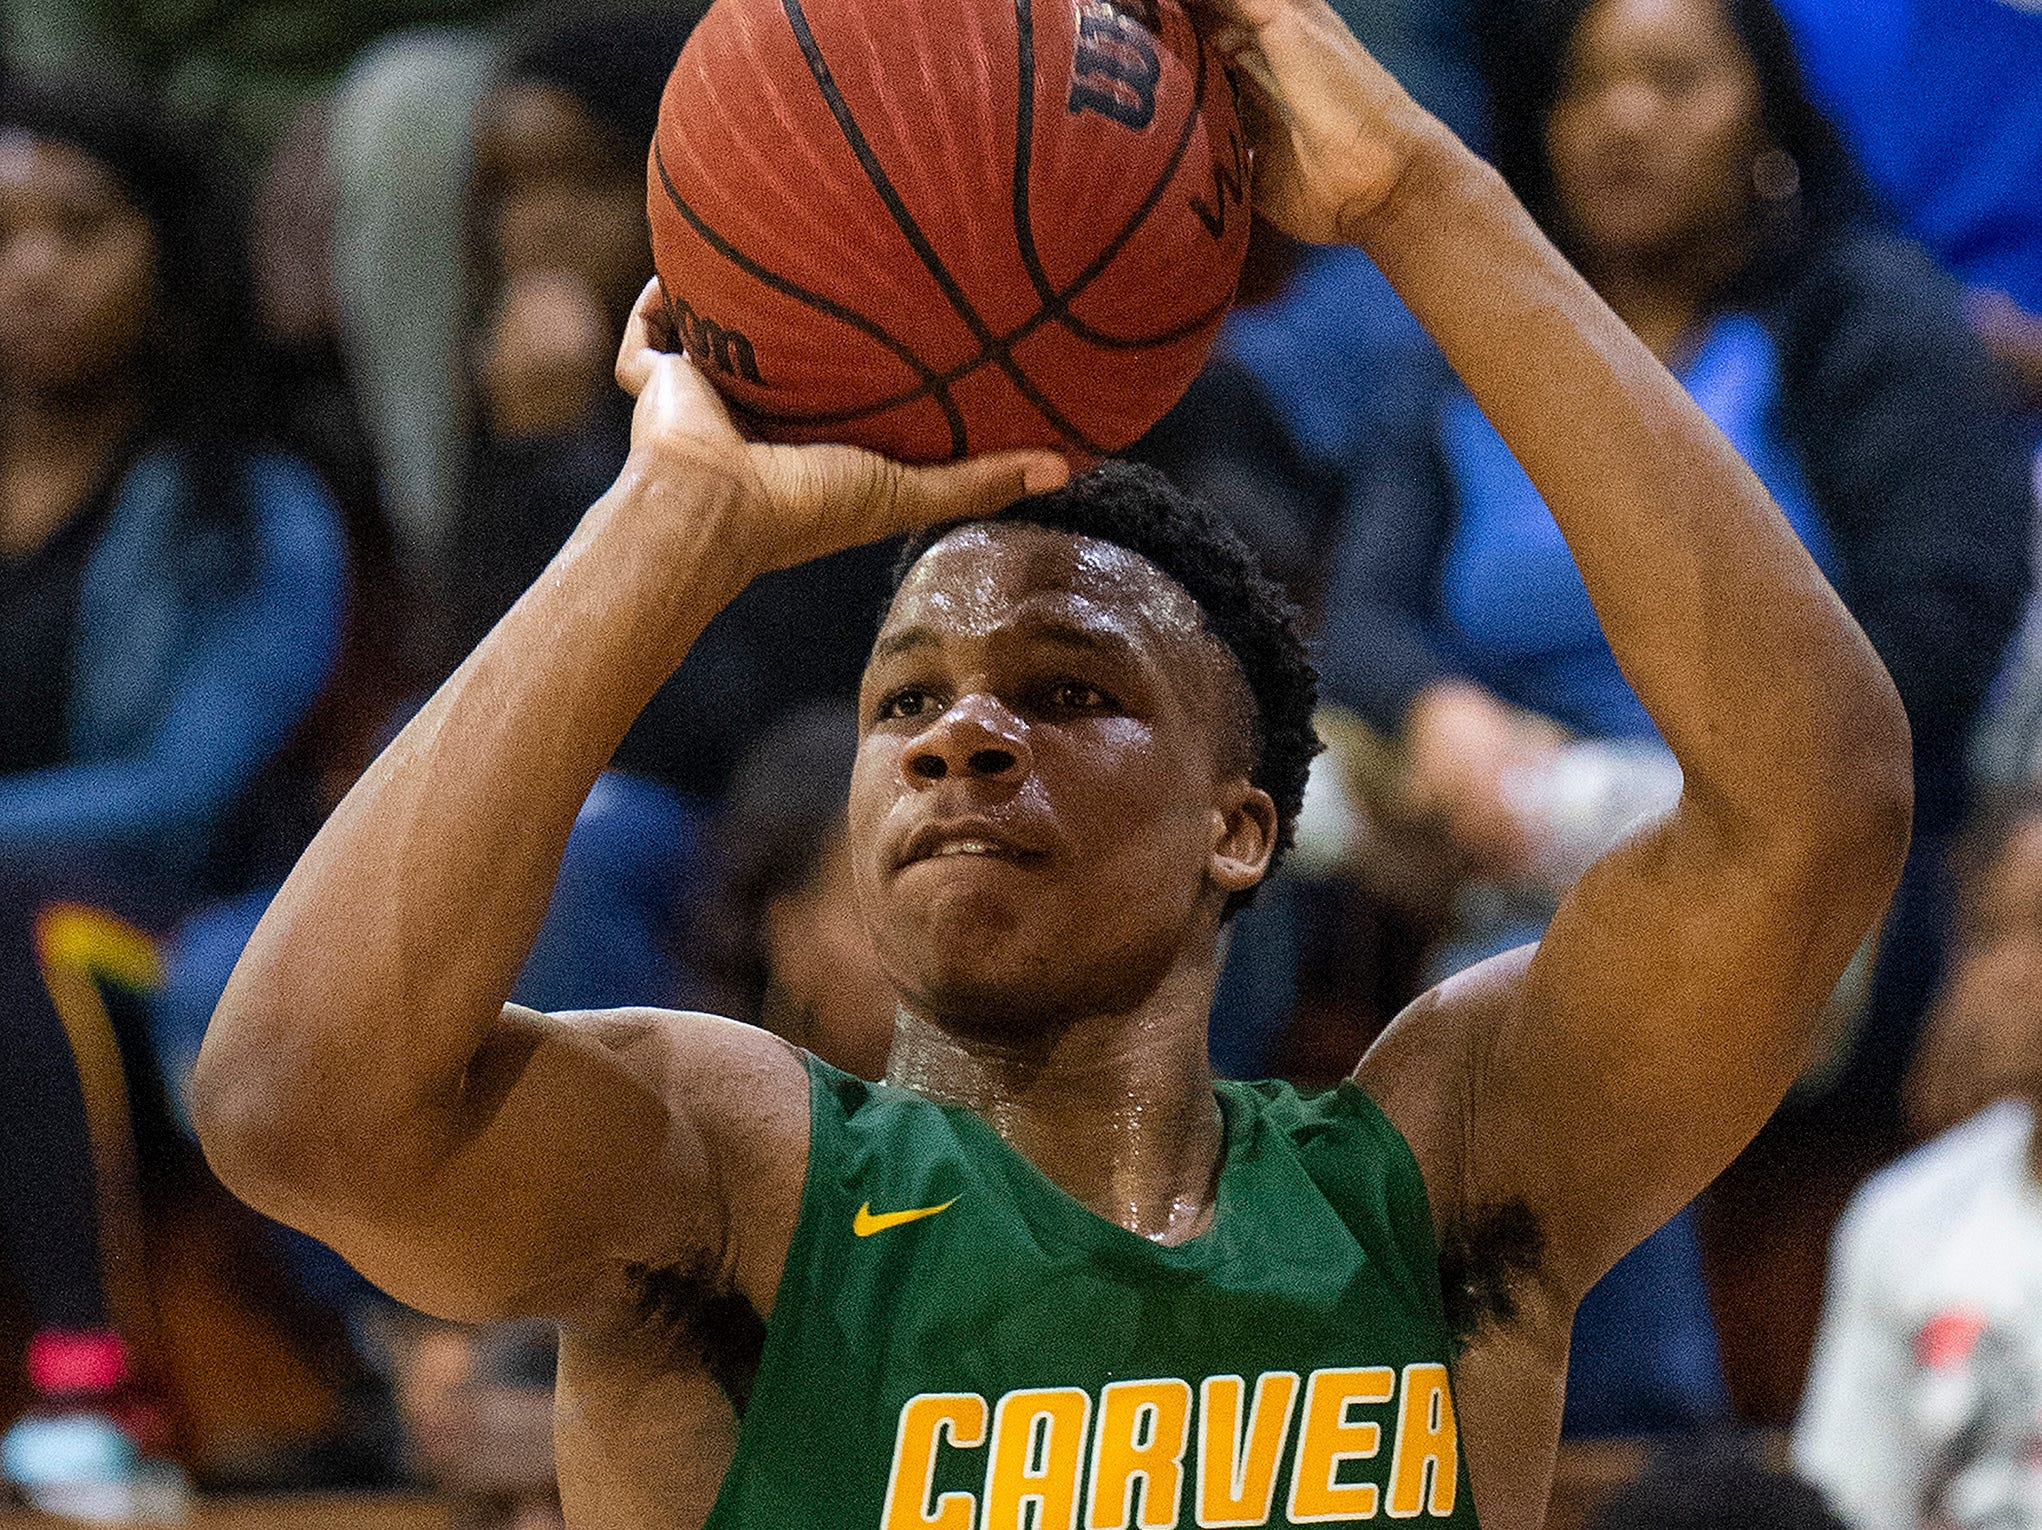 Carver's Michael Murry (23) against Carver at the Lanier campus in Montgomery, Ala., on Friday January 11, 2019.